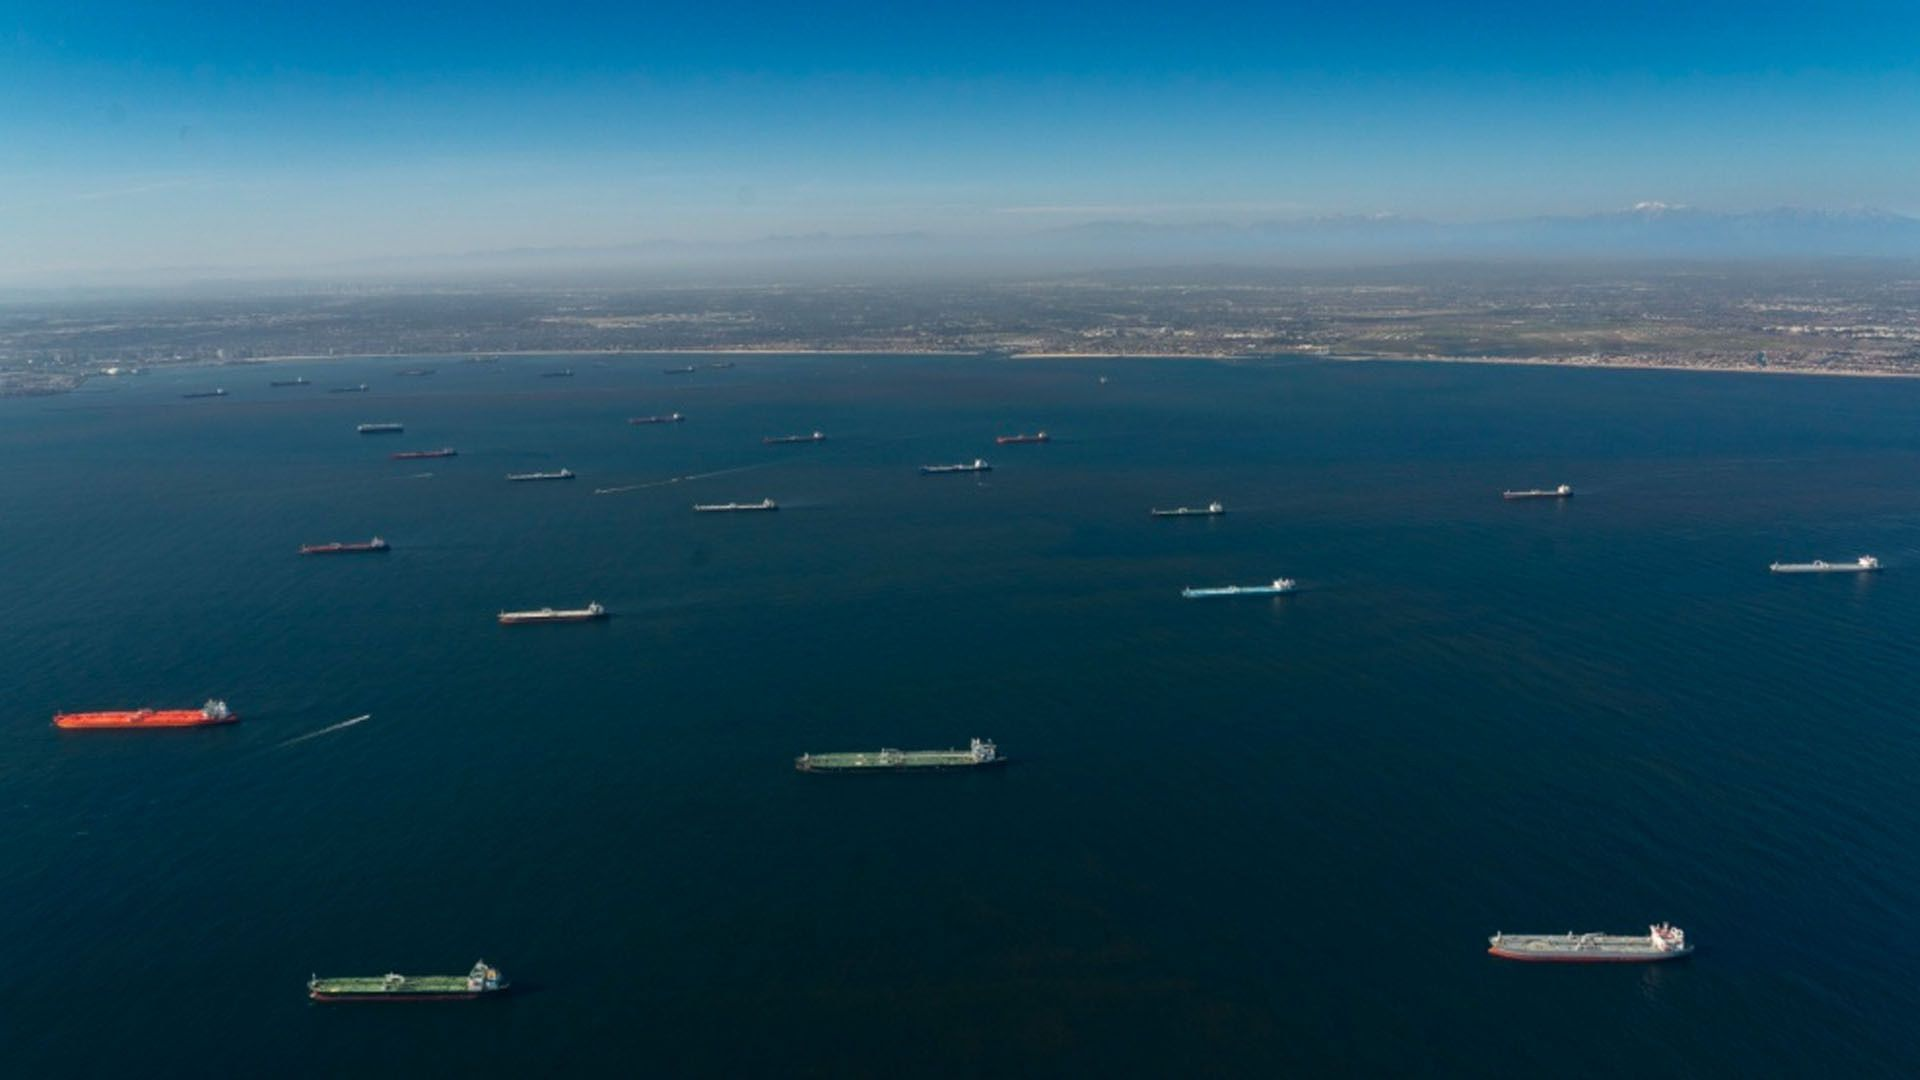 Oil tankers parked in the ocean.